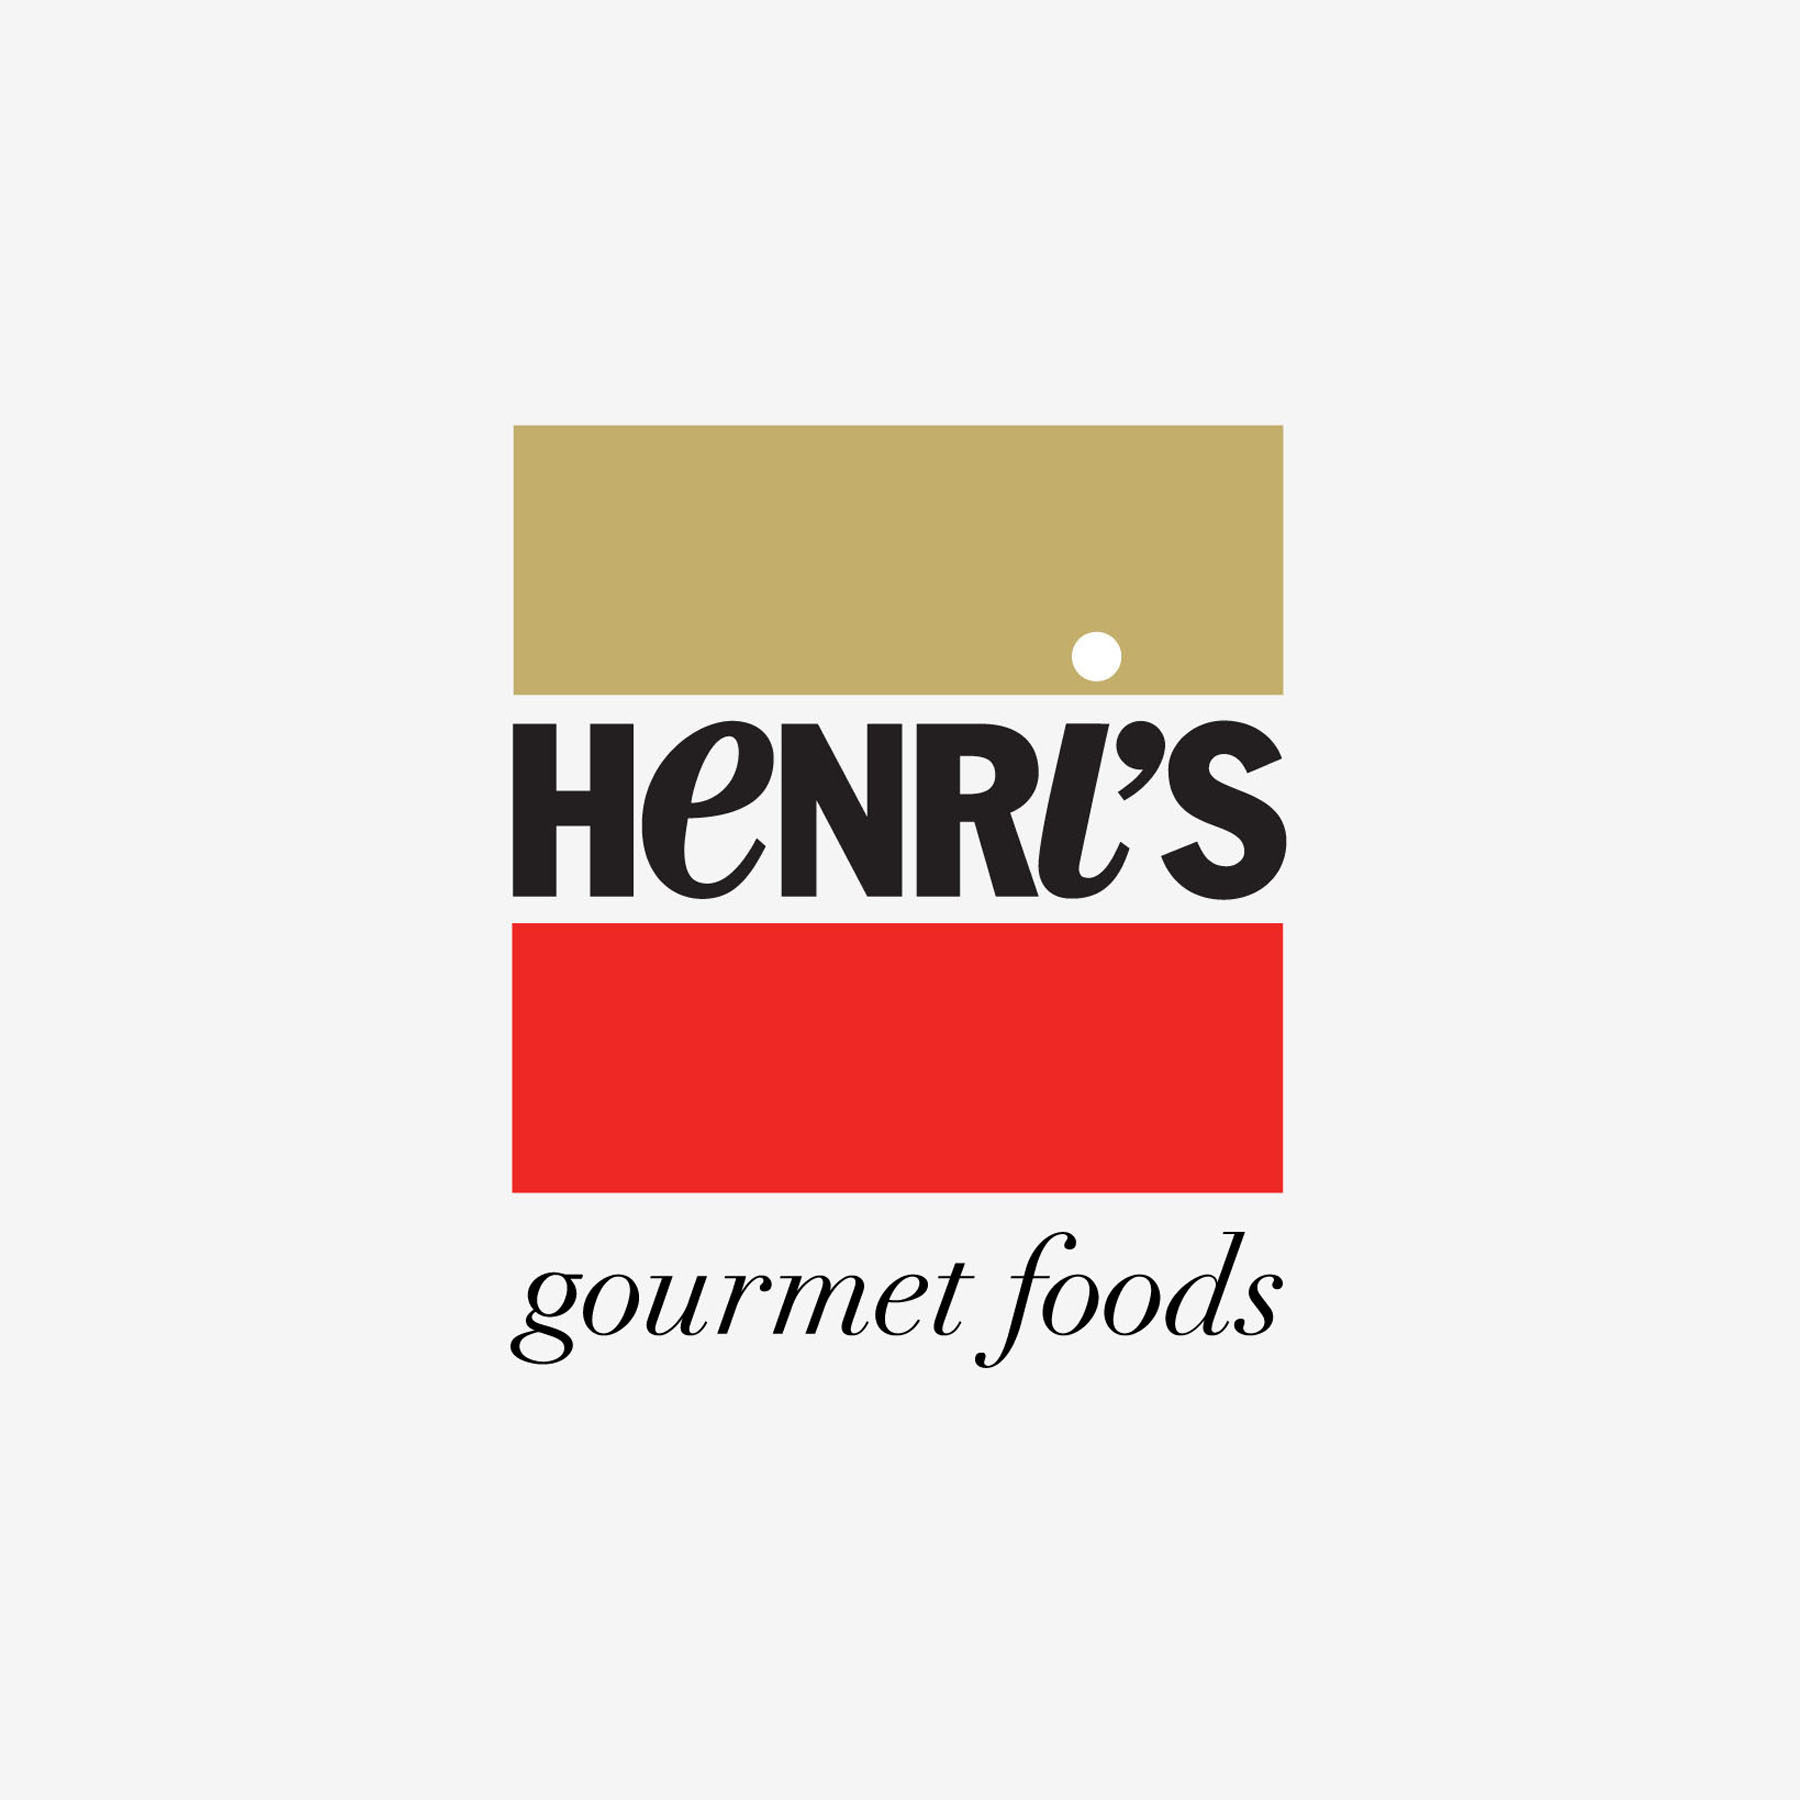 Henri's - Logo for NYC Gourmet Foods and Coffeeshop in the West Village, used for signage and packaging for the brand.